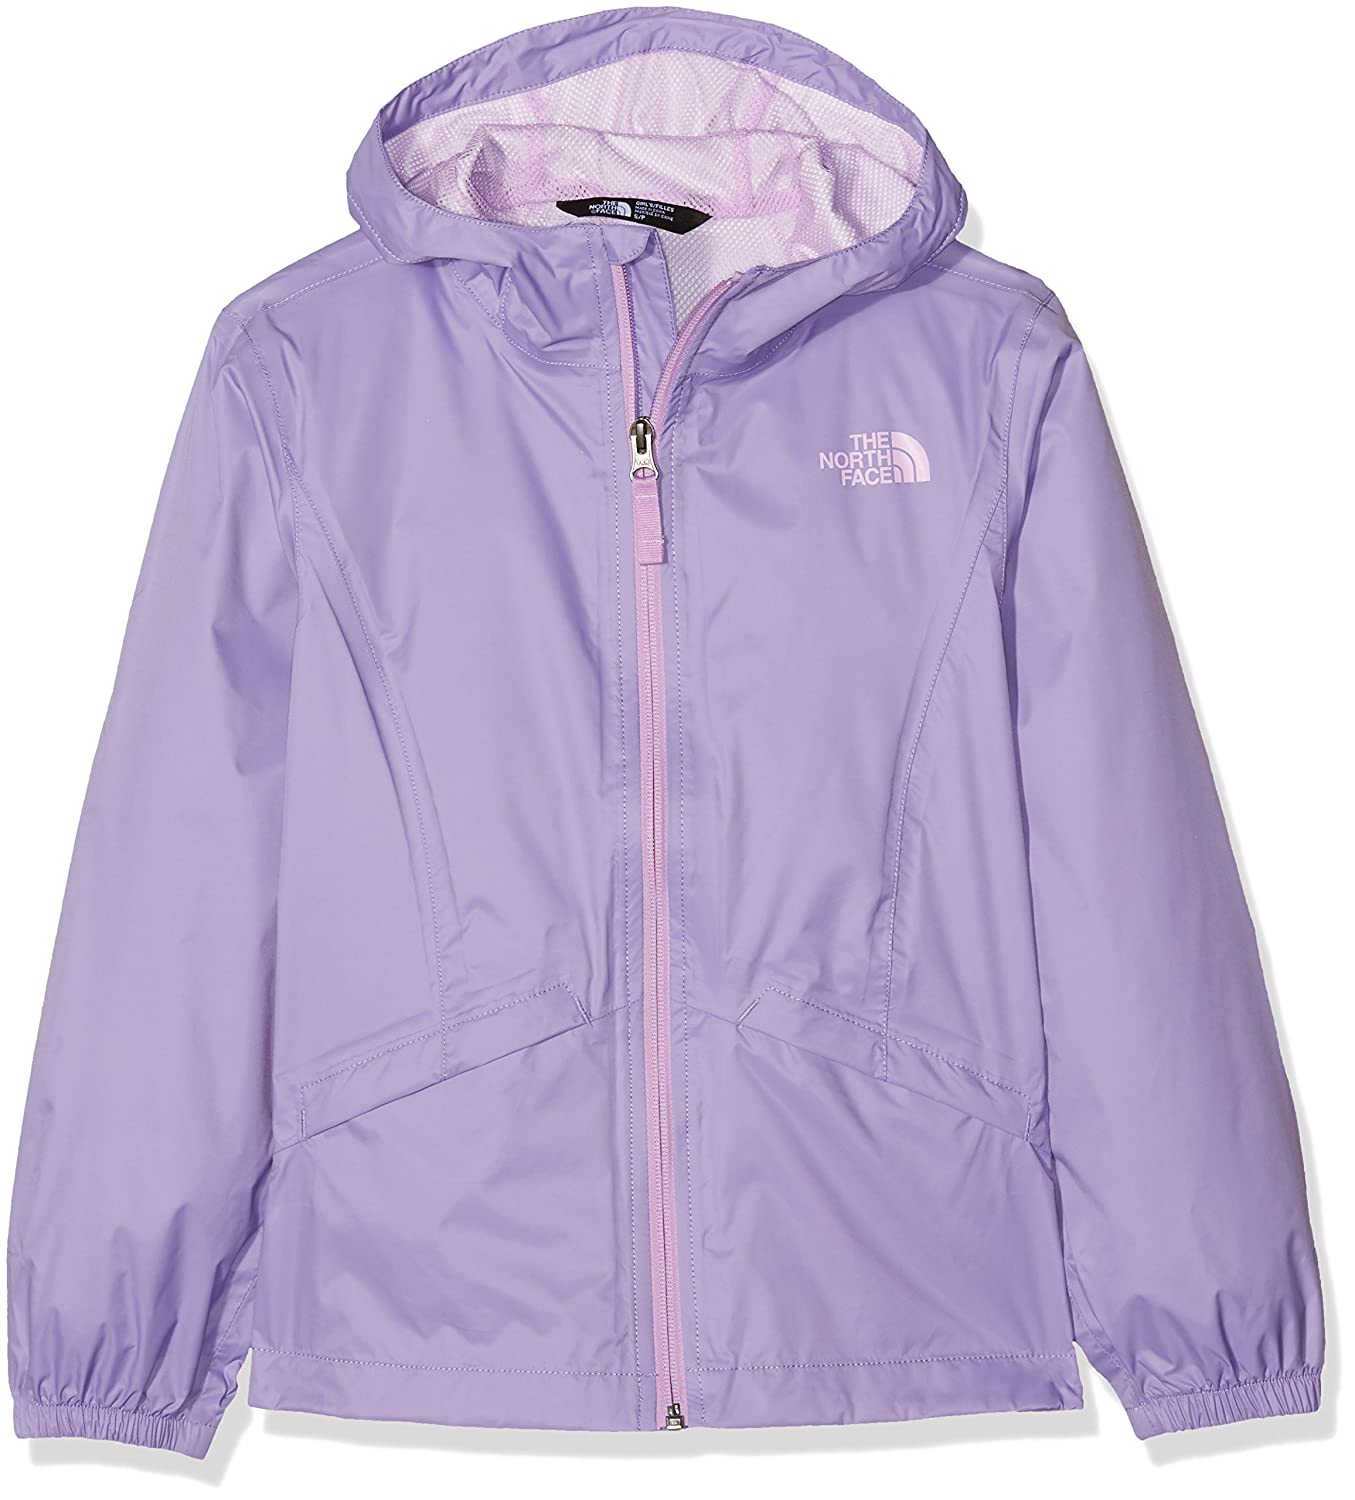 Girl's The North Face Zipline Rain Jacket Paisley Purple Size Medium T92U3FNXT. M